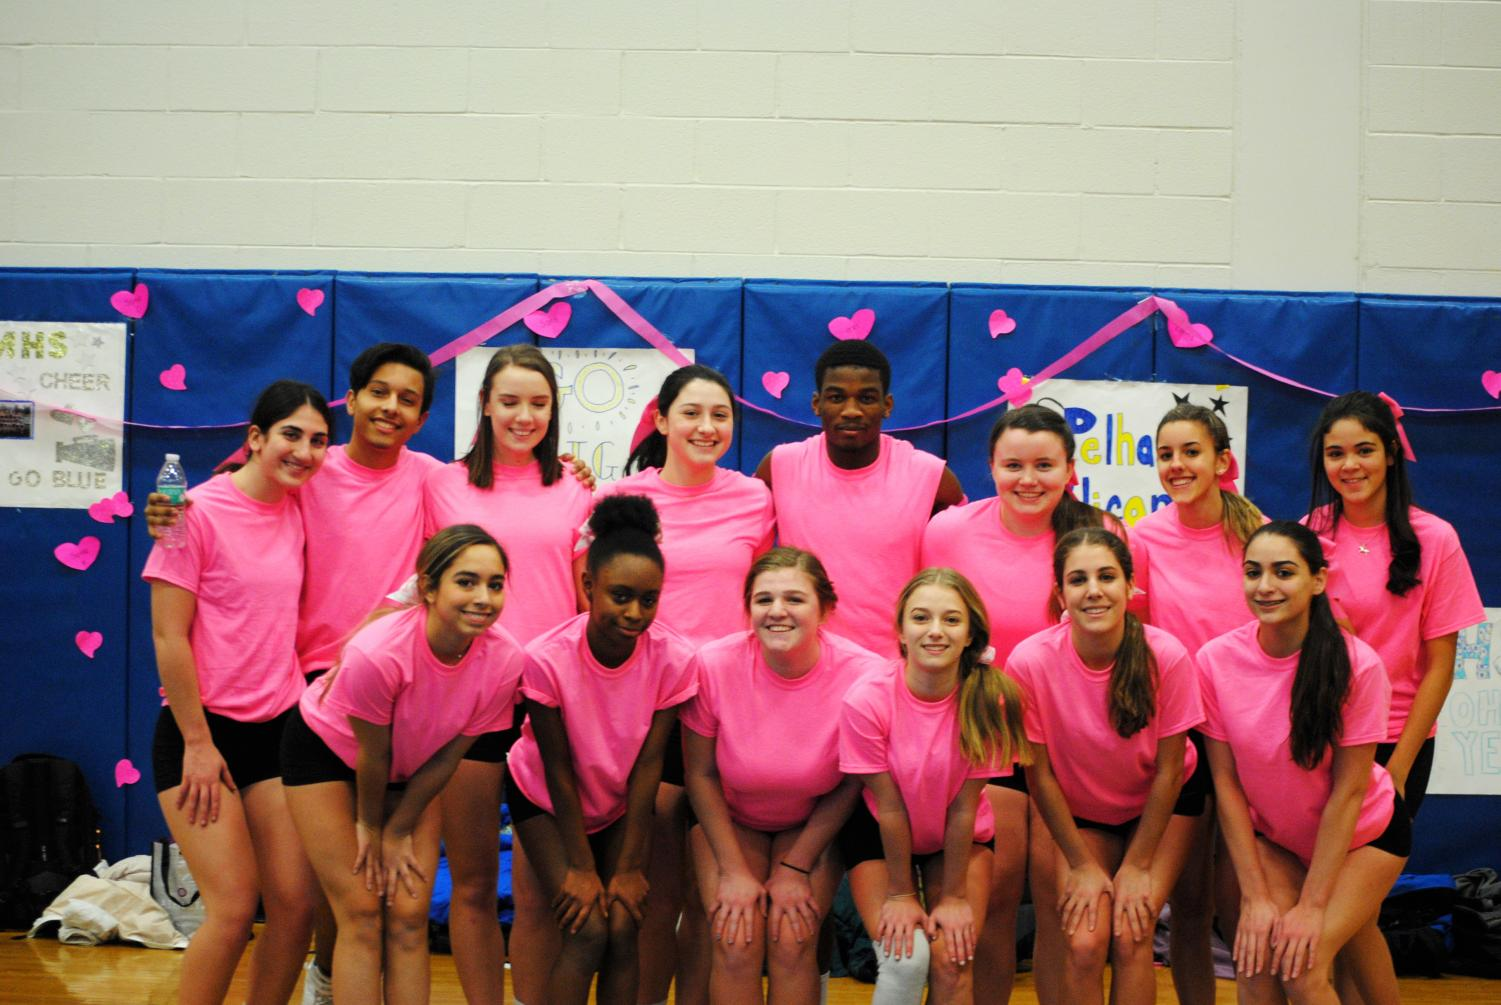 The winter cheer team gets together in their all pink outfits.